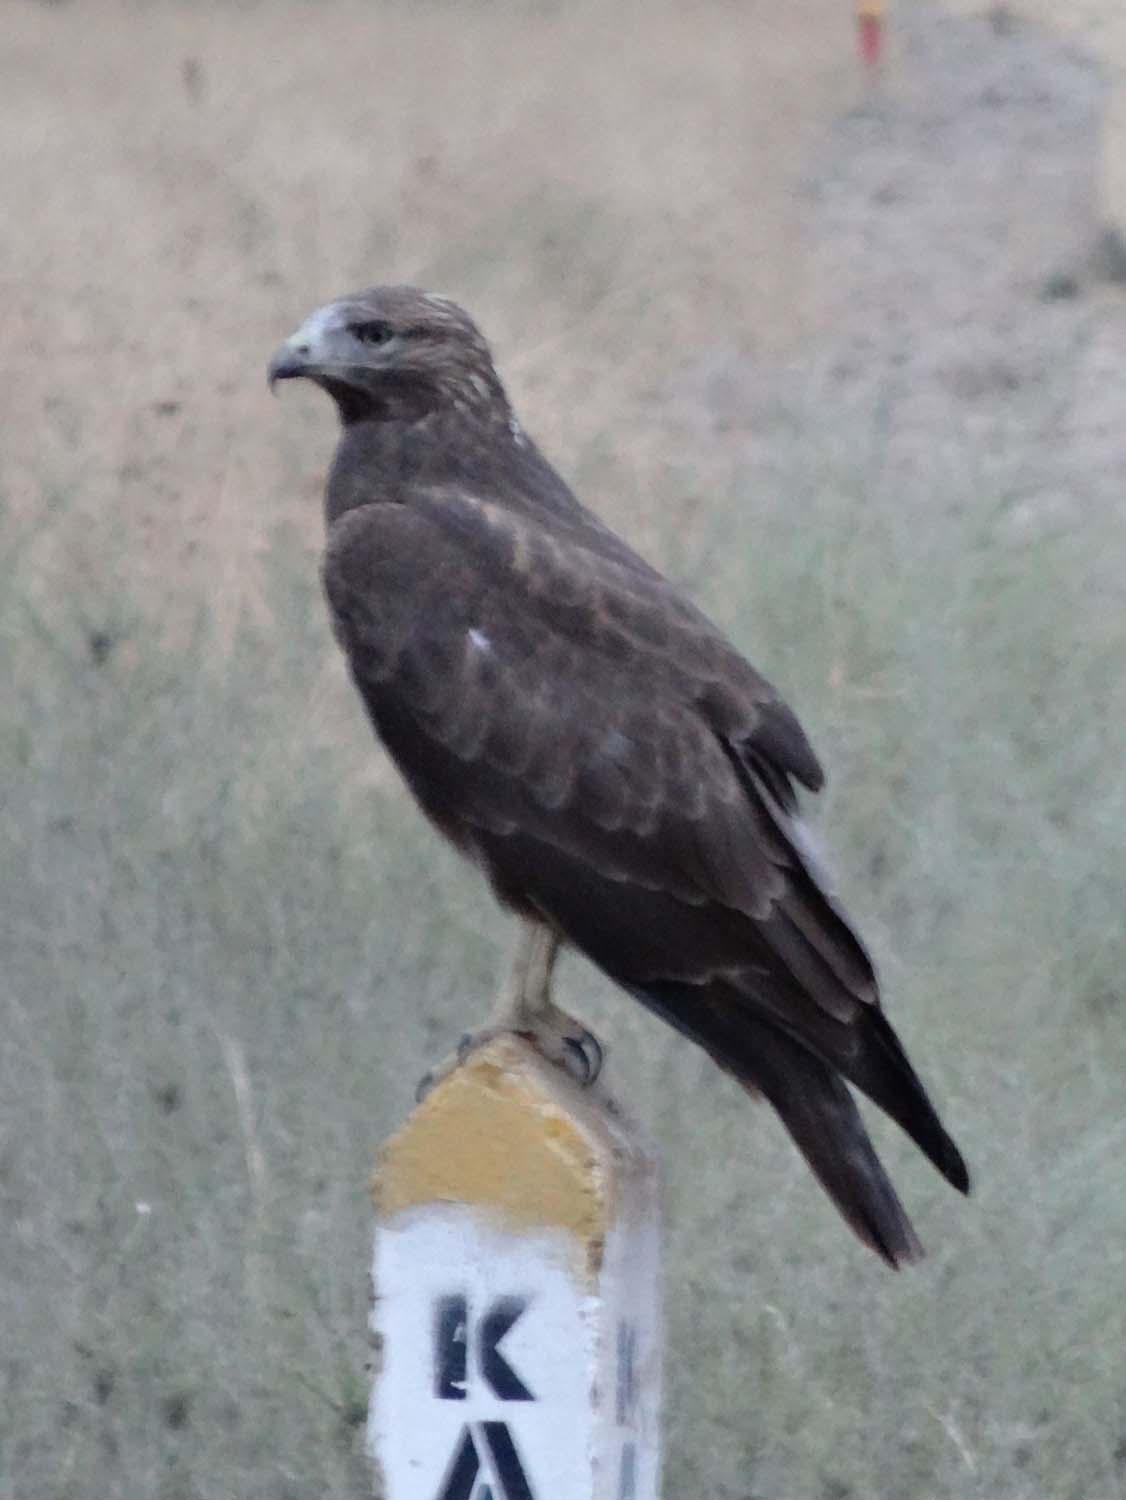 bird of prey, not sure which type (any thoughts?)